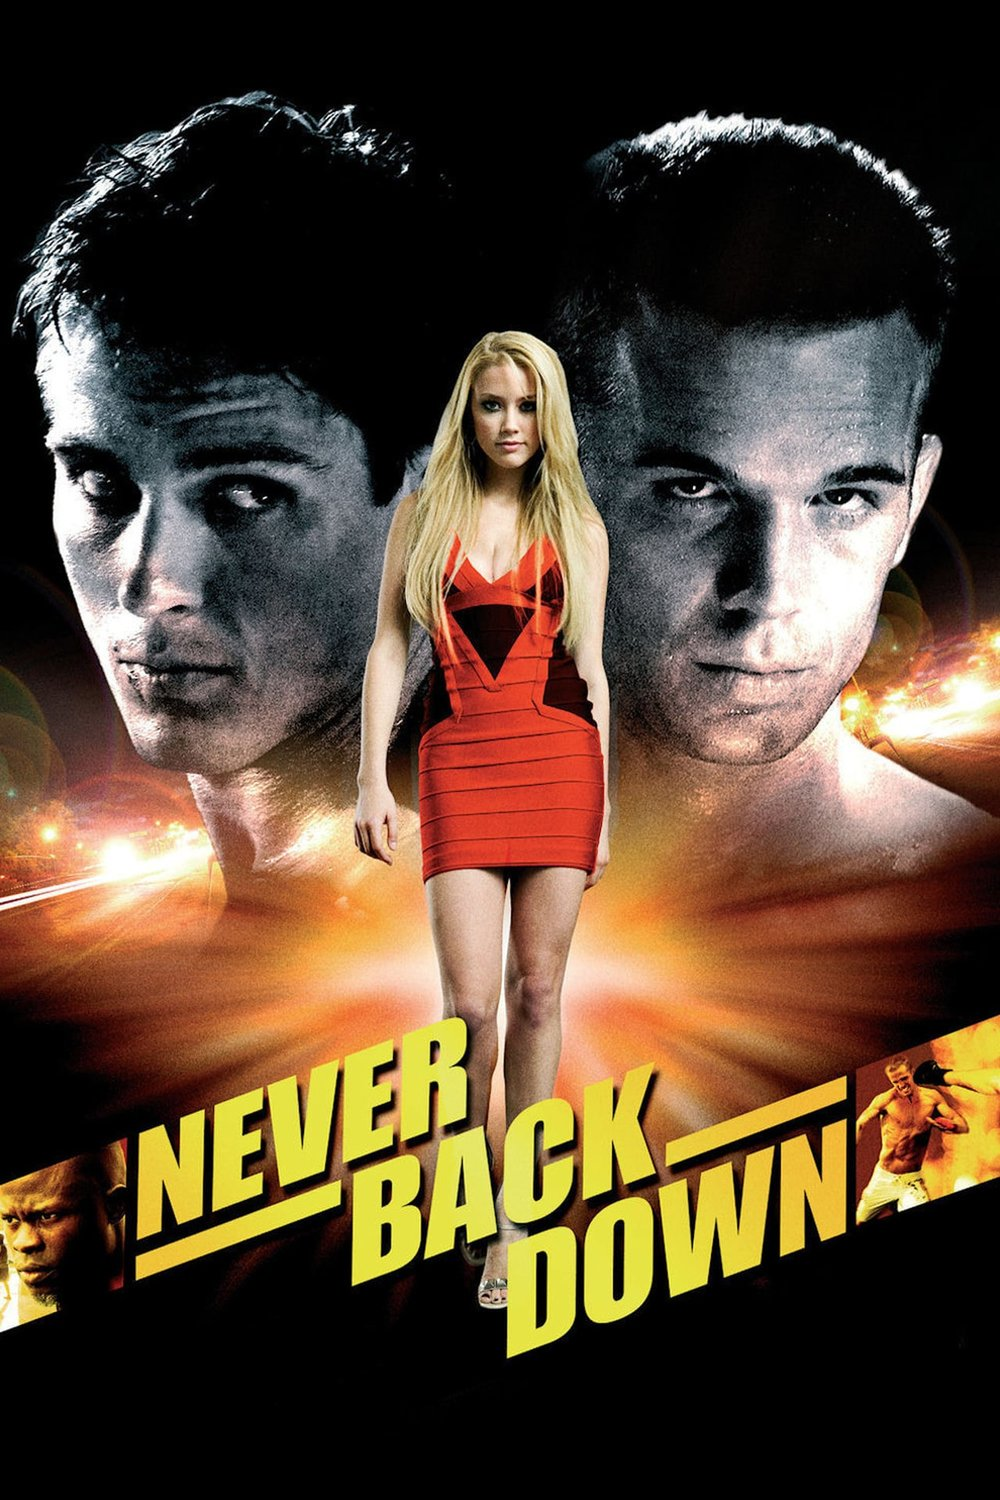 Never Back Down by Jeff Wadlow